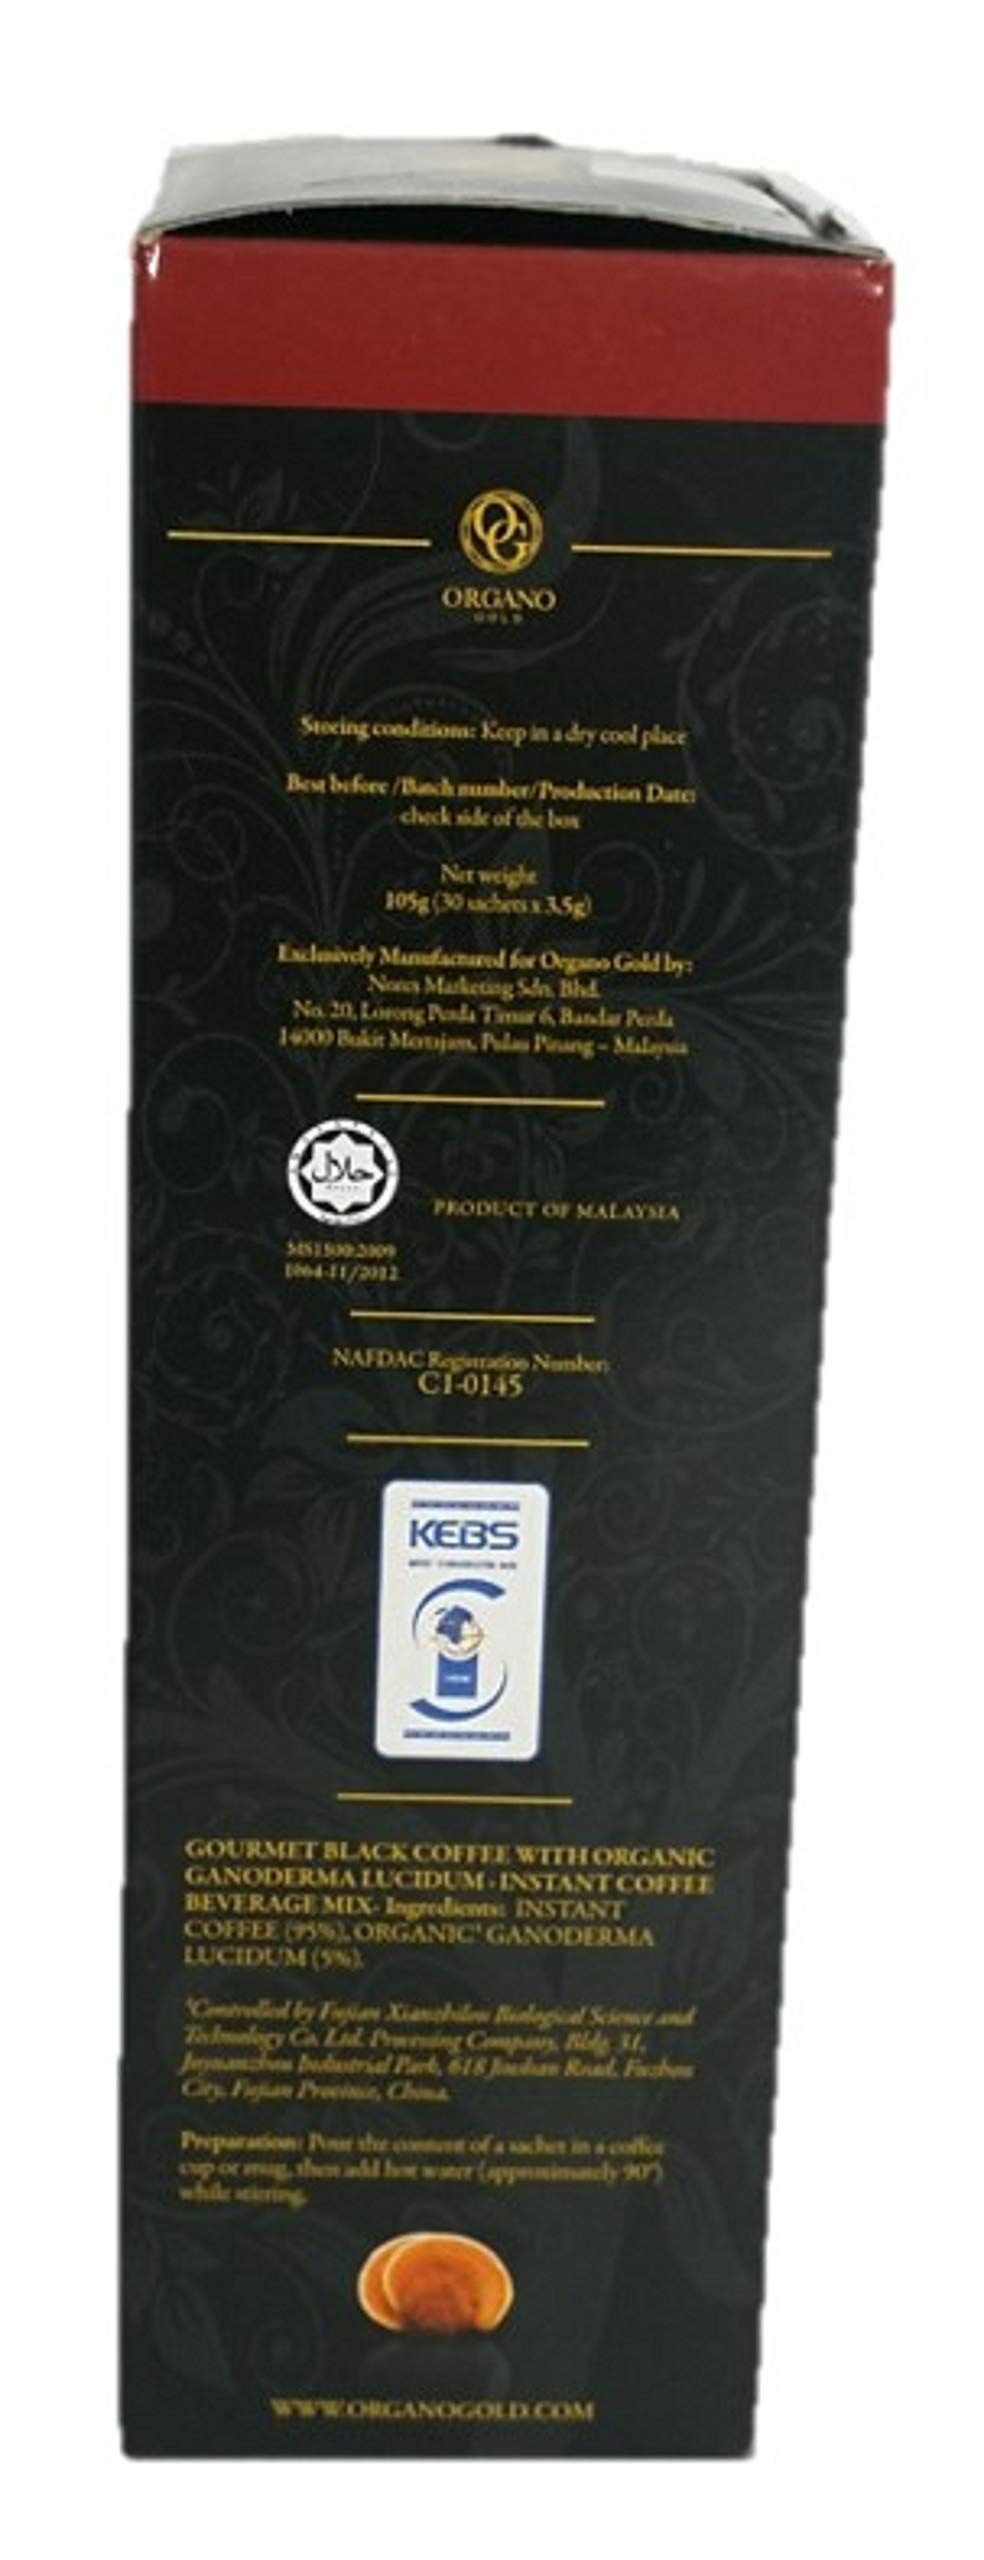 Organo Gold Gourmet Black Coffee – Café Noir with Certified Ganoderma Extract (30 Sachets)